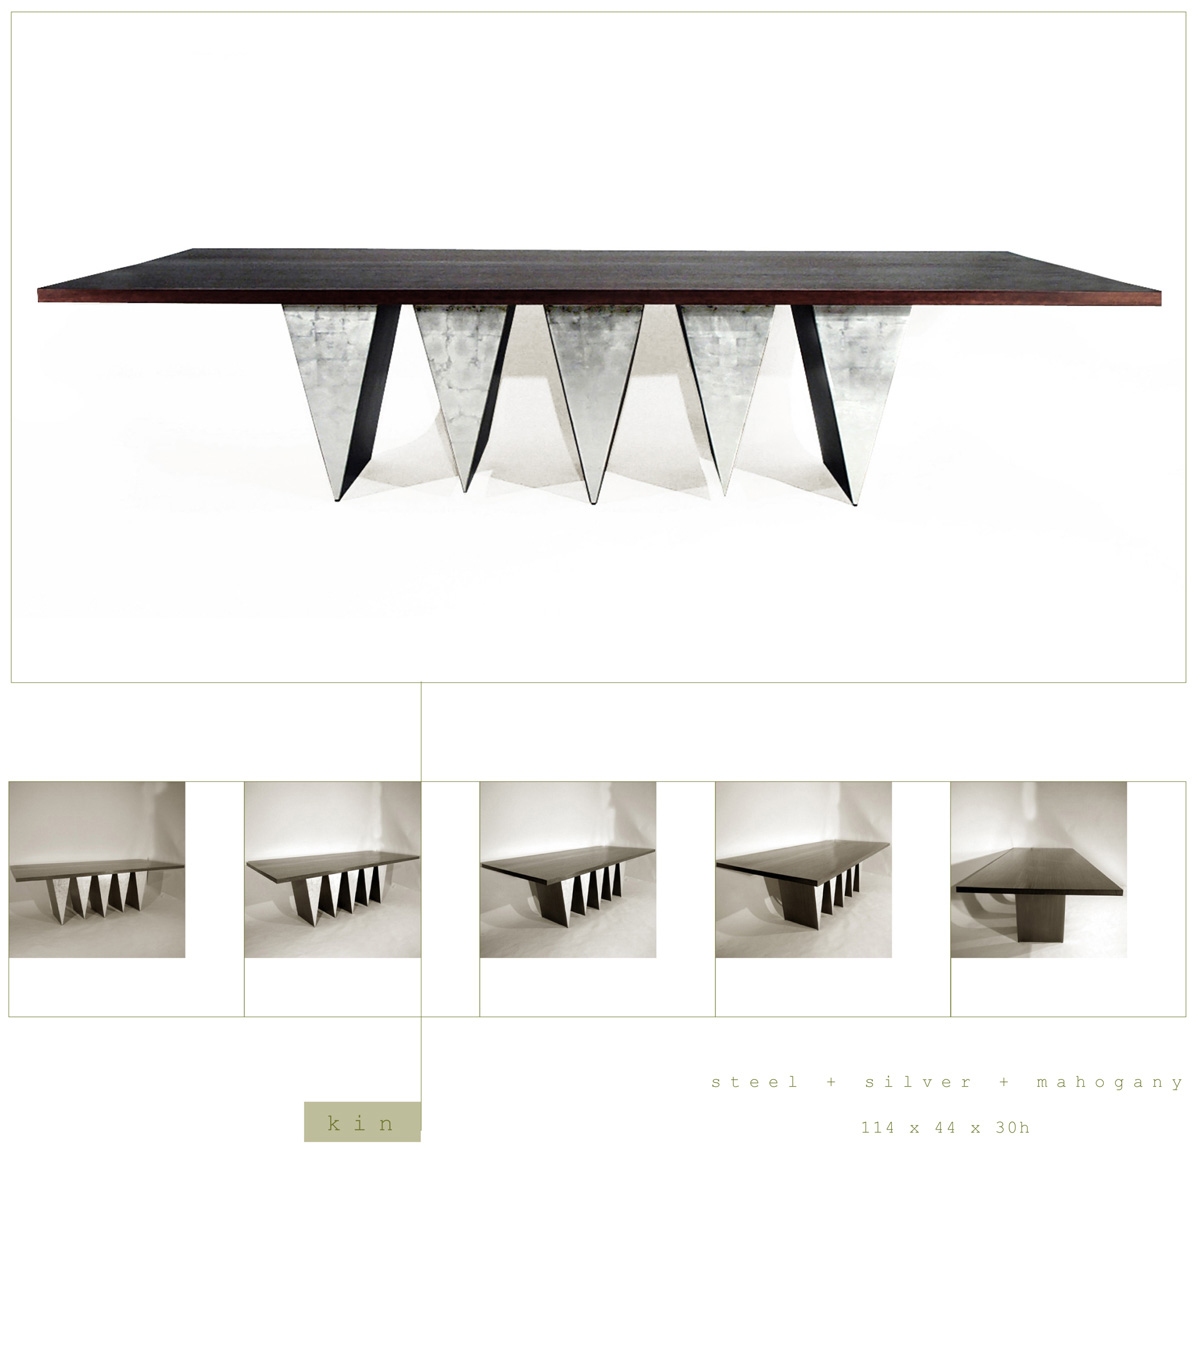 Kin is a contemporary dining table made out of steel, silver and mahogany measuring 114 x 44 x 30 inches made by Chad Manley Design.